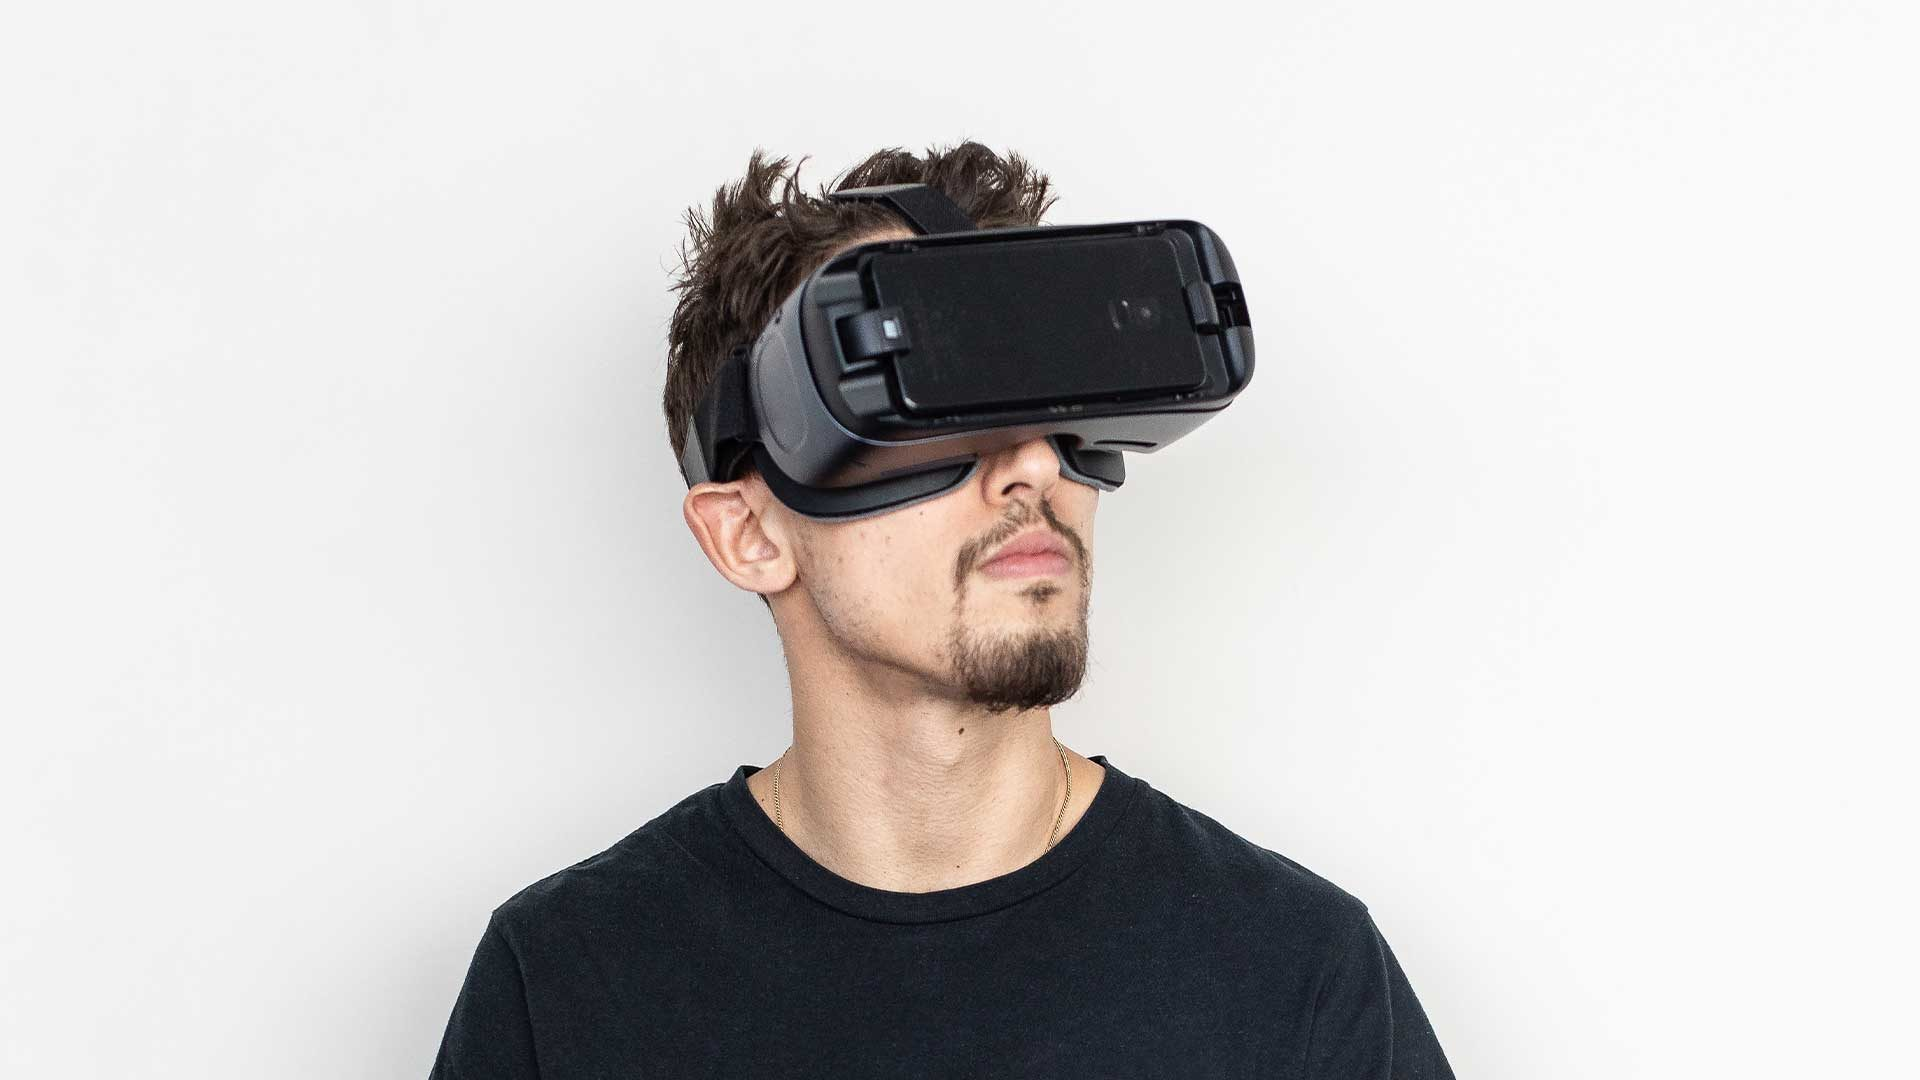 Virtual Reality environments, a solution to work together without being near